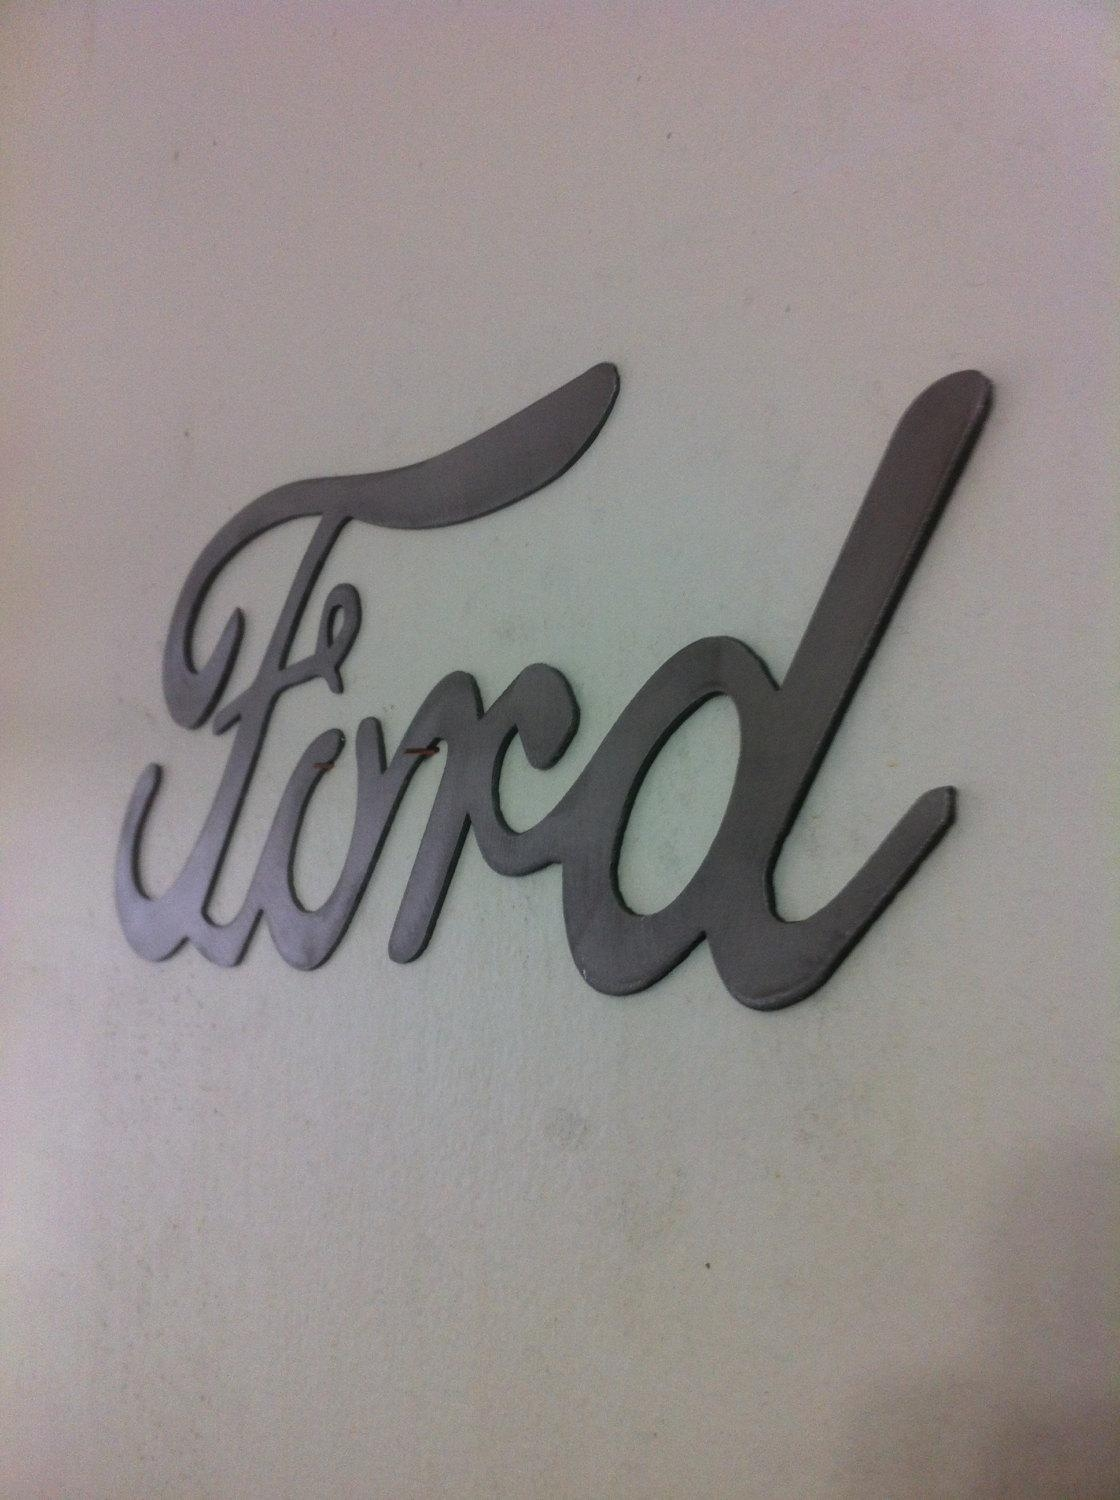 Ford Cursive Metal Wall Art Sign With Regard To Ford Mustang Metal Wall Art (Image 9 of 20)